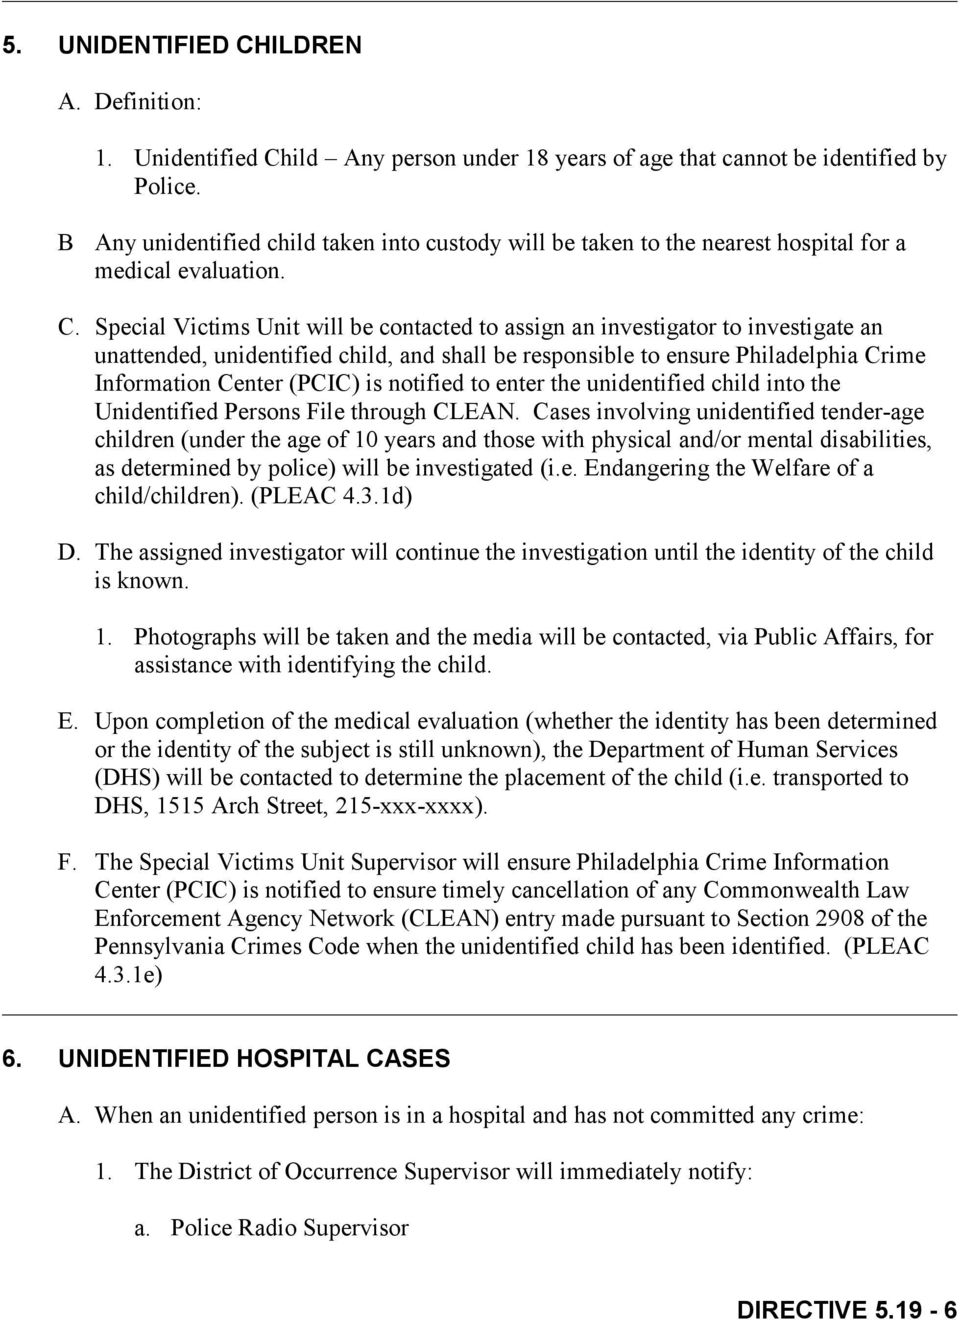 Special Victims Unit will be contacted to assign an investigator to investigate an unattended, unidentified child, and shall be responsible to ensure Philadelphia Crime Information Center (PCIC) is